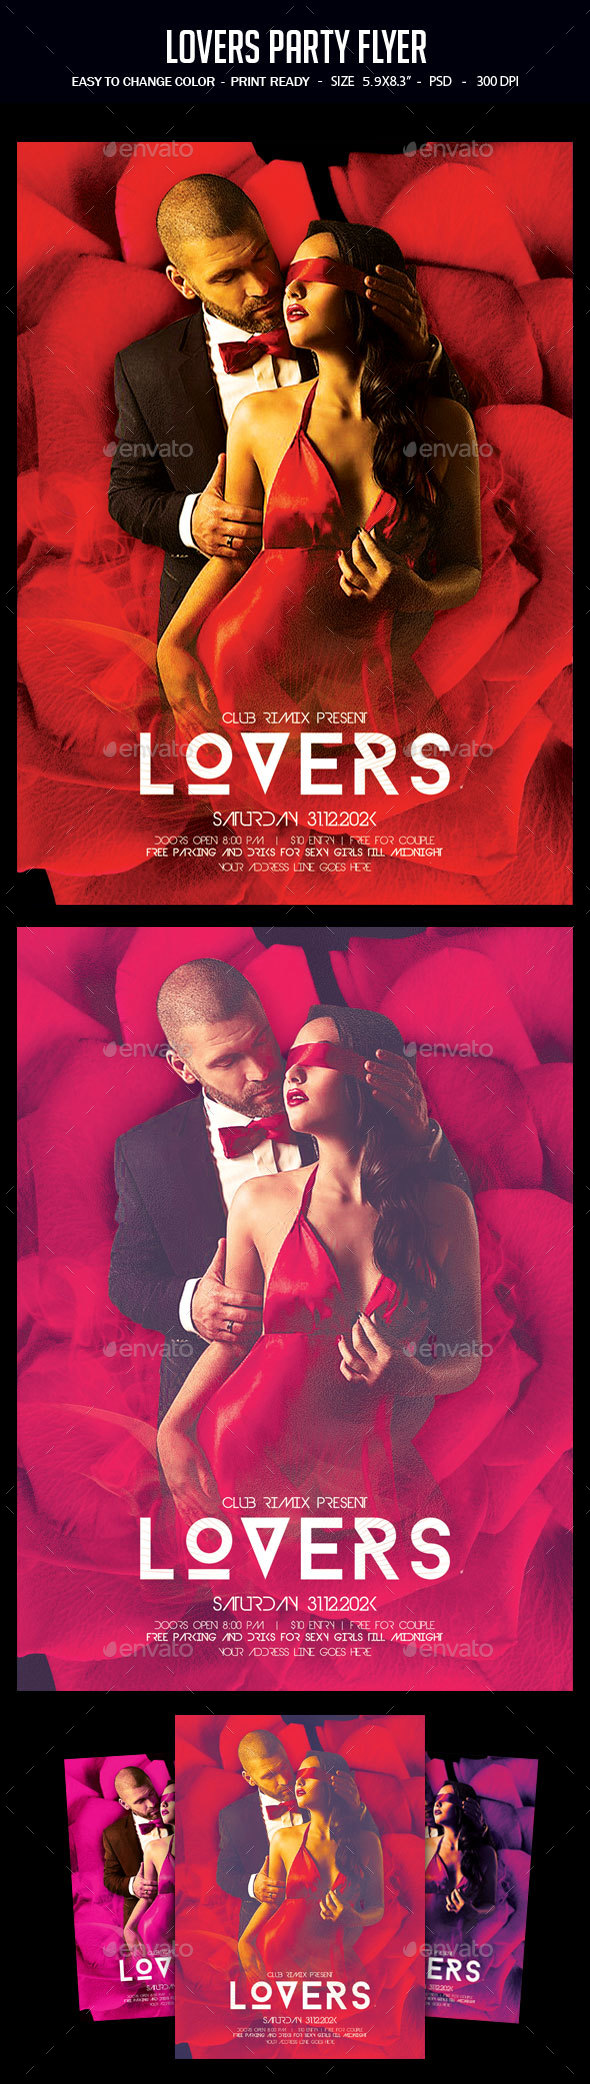 Lovers Party Flyer - Clubs & Parties Events